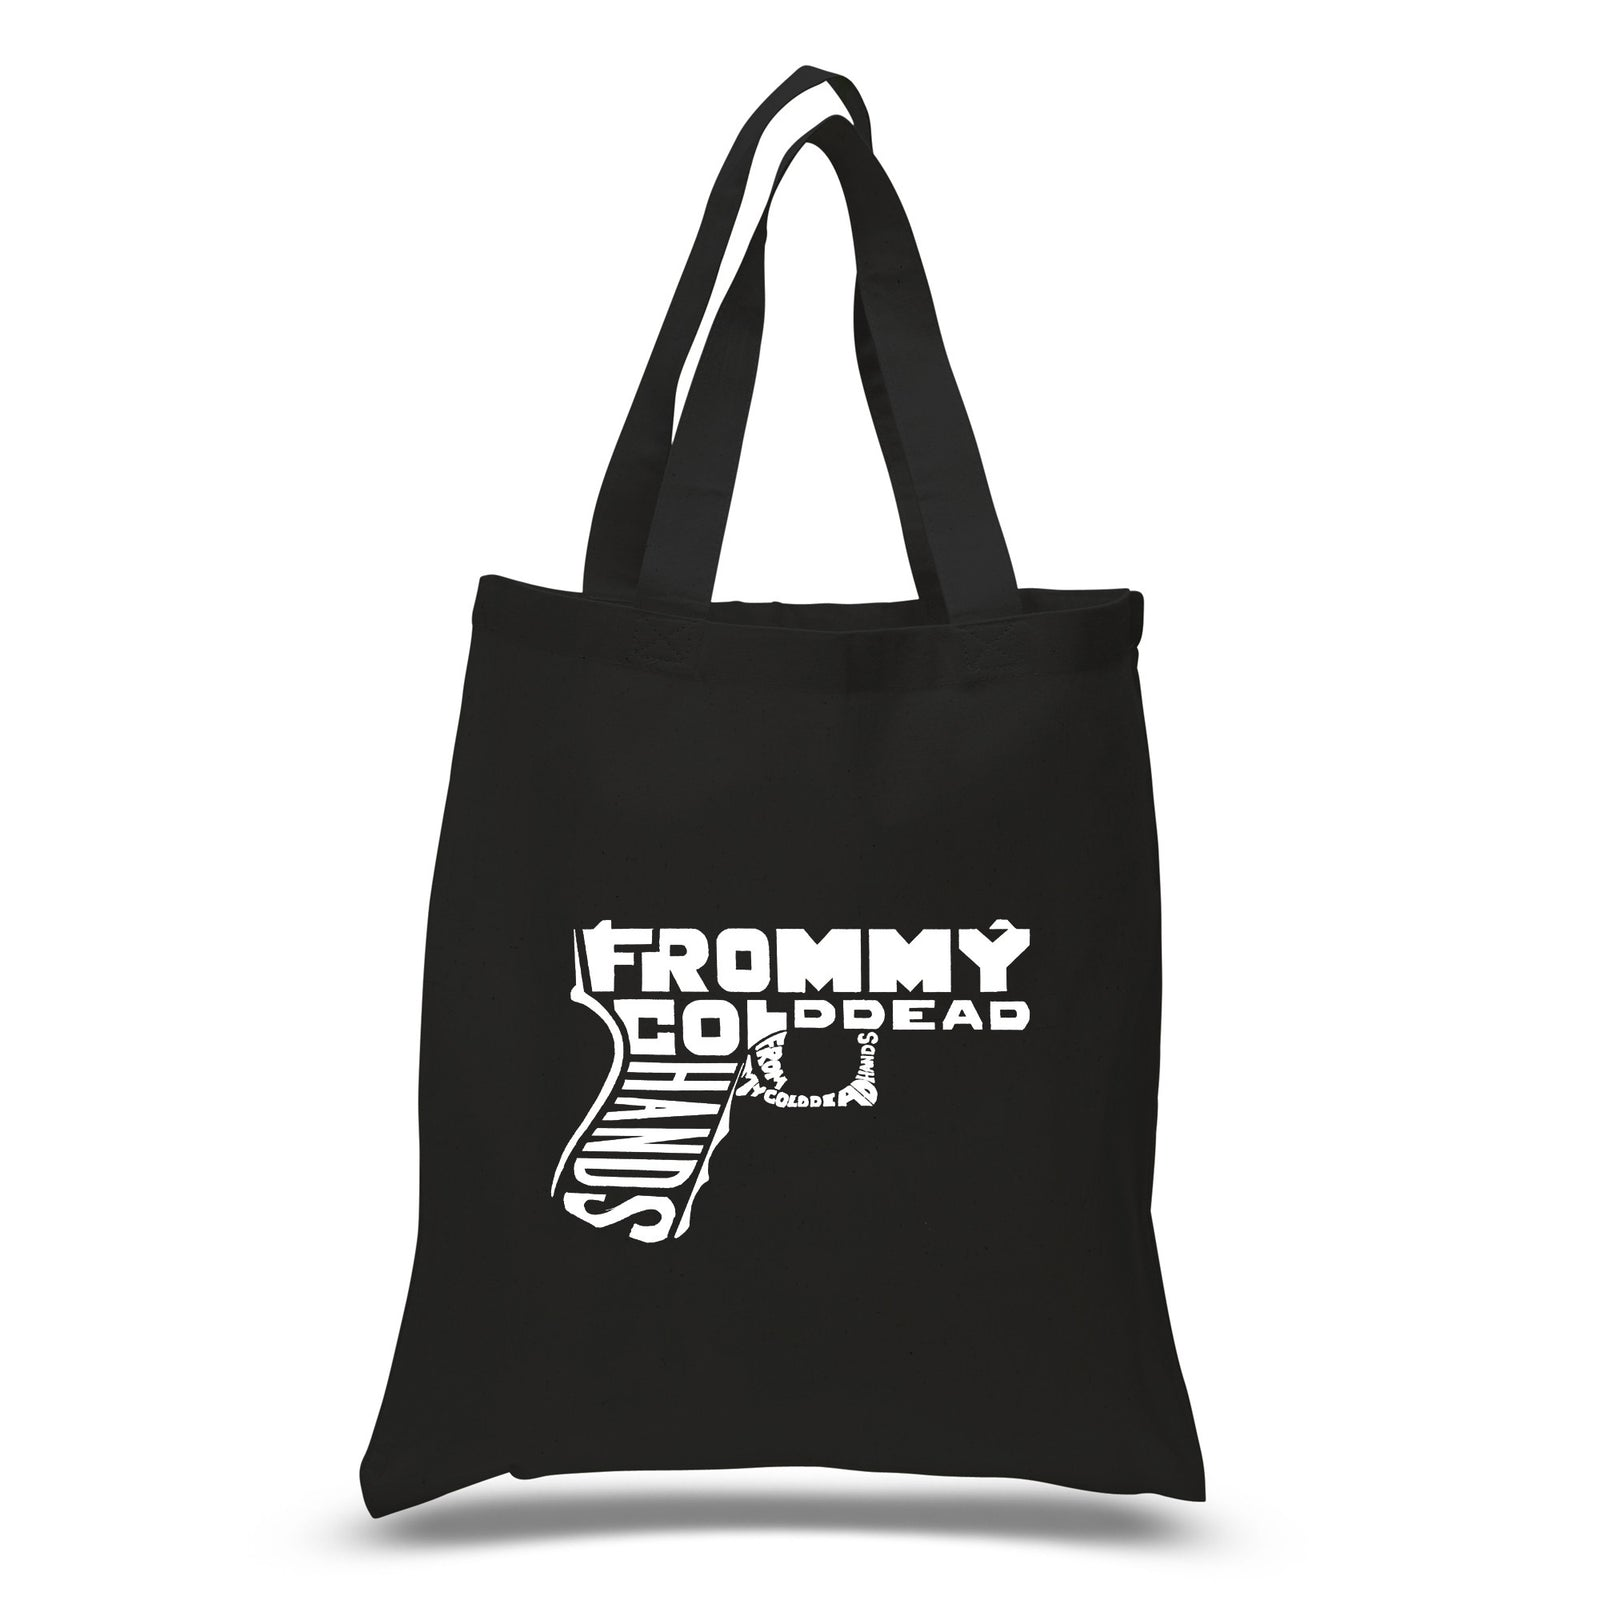 Los Angeles Pop Art Small Tote Bag - Out of My cold Dead Hands Gun